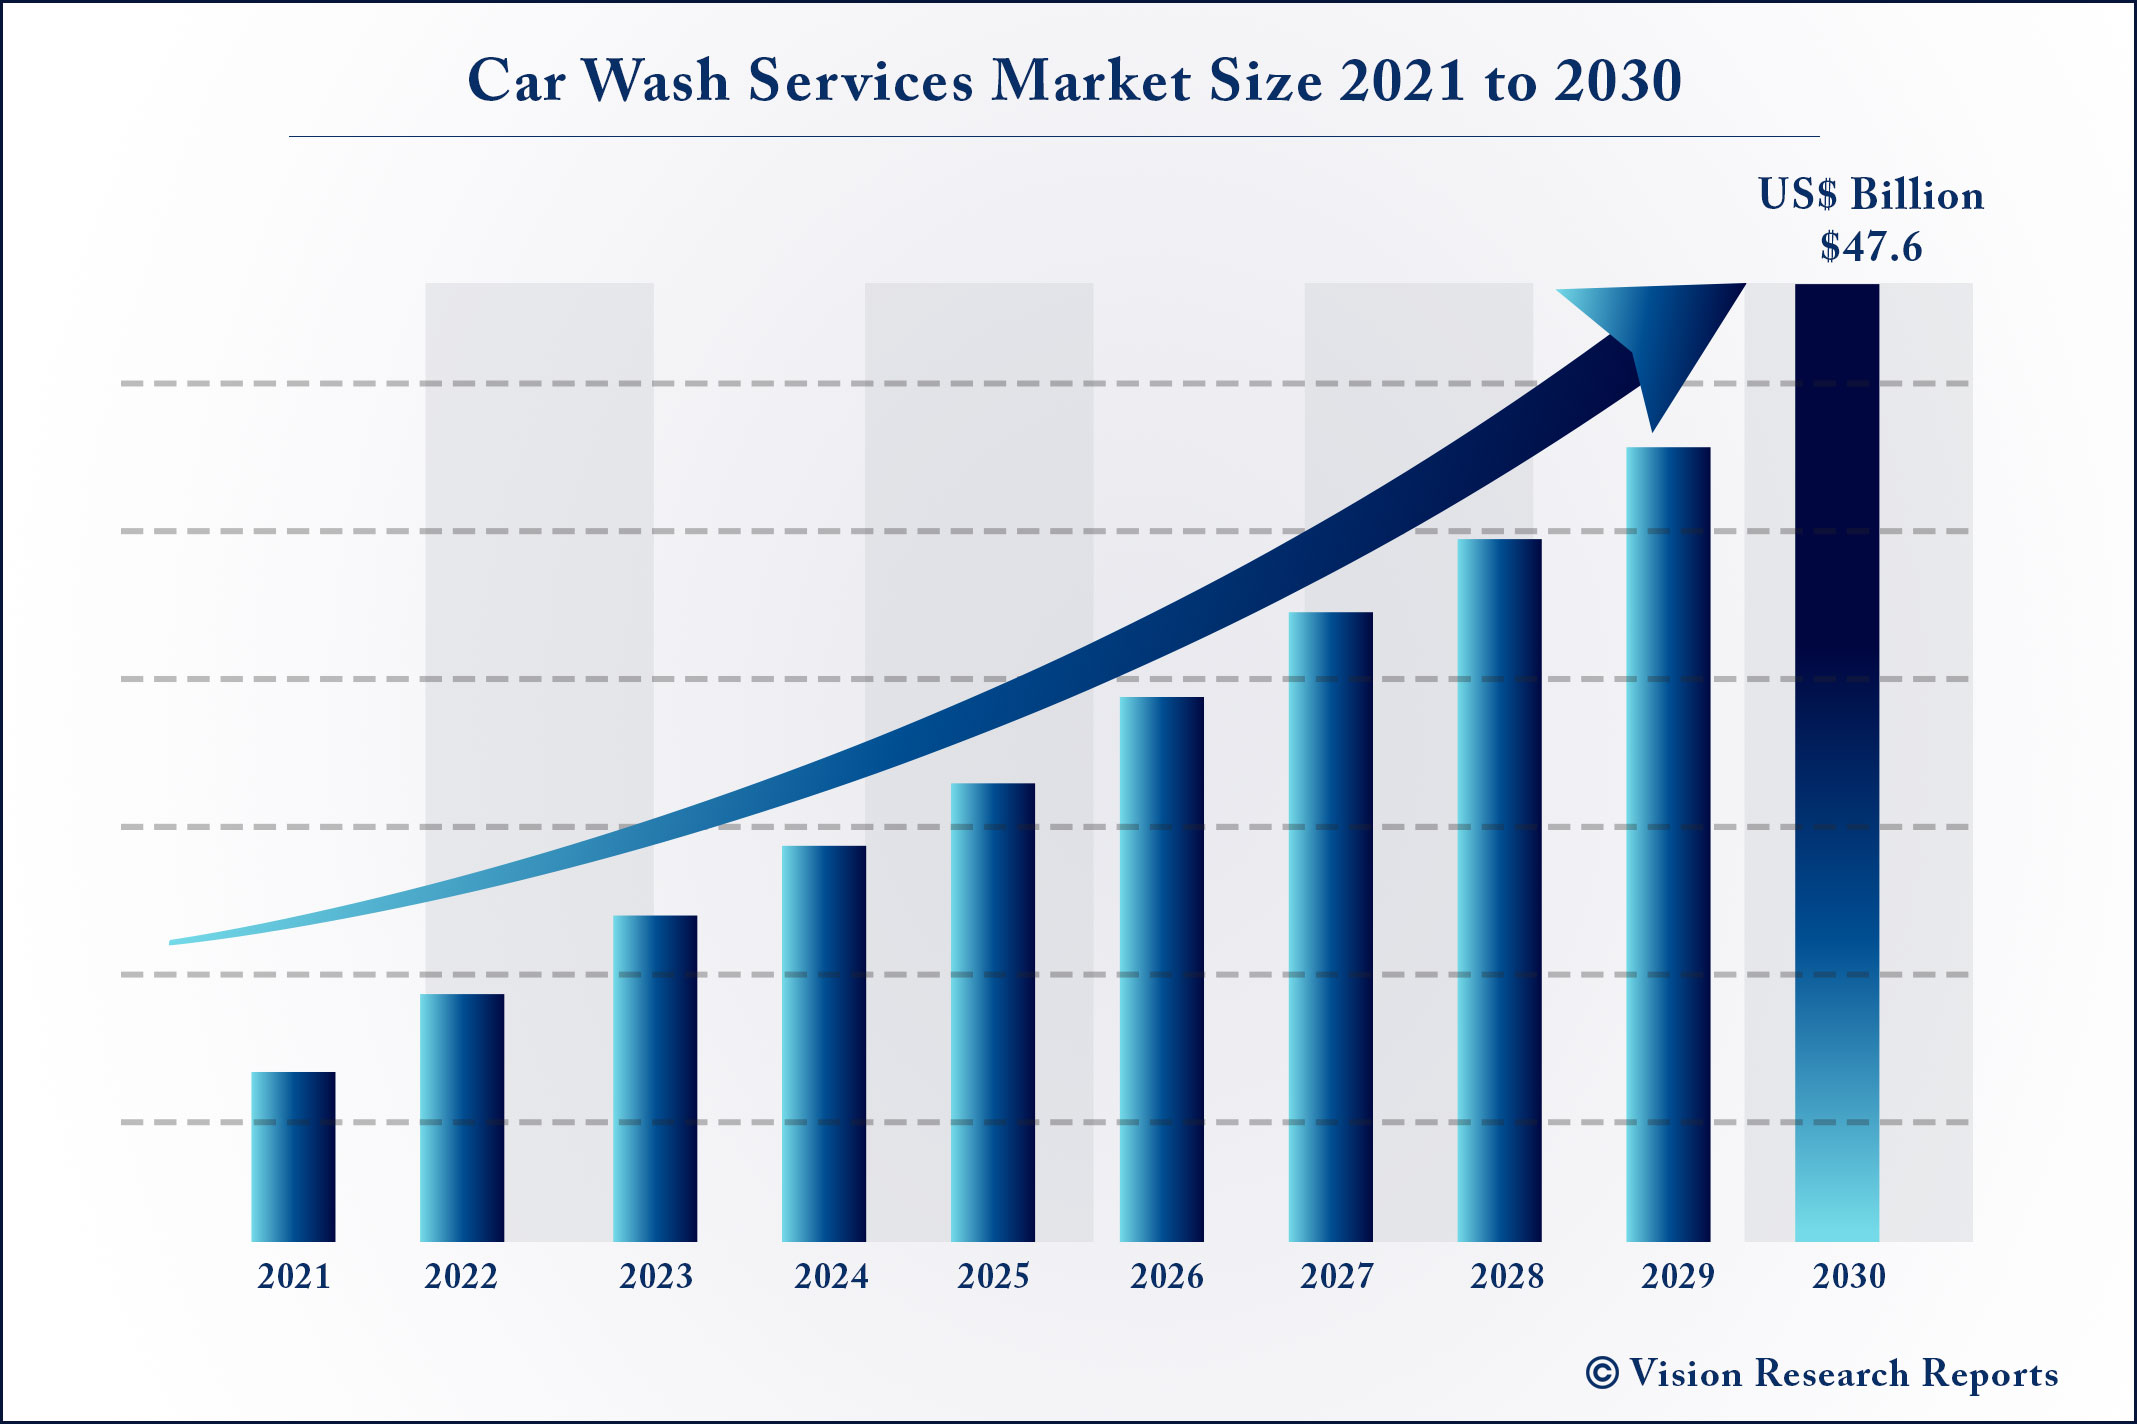 Car Wash Services Market Size 2021 to 2030